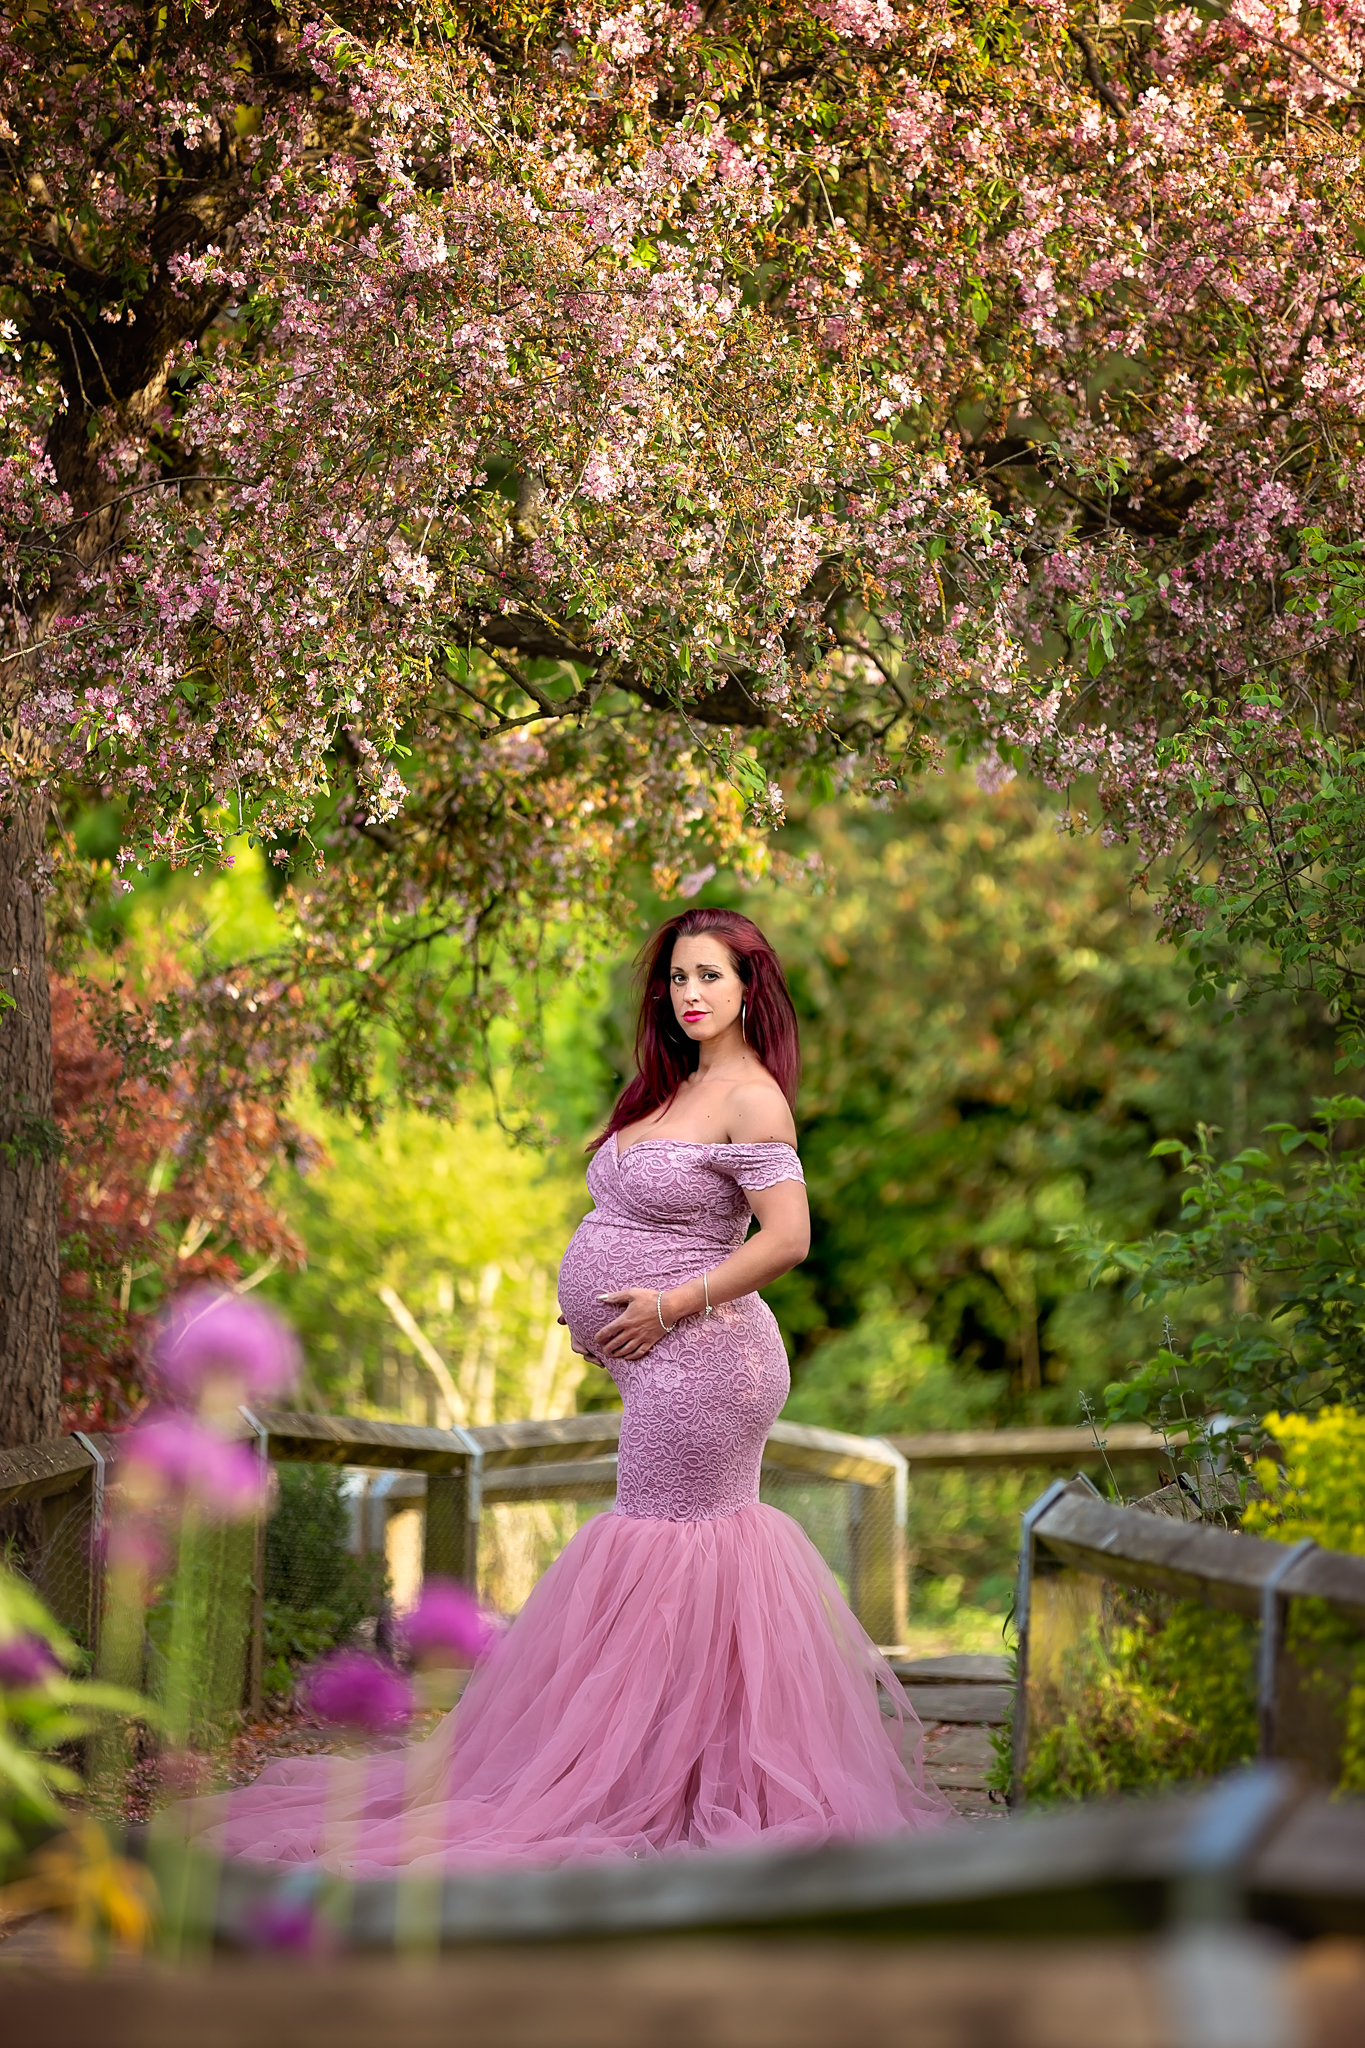 Maternity photographer Leeds-York-Harrogate-Bradford-Wakefield: beautiful pregnant woman in a long purple dress posing for a maternity photo in Leeds, West Yorkshire